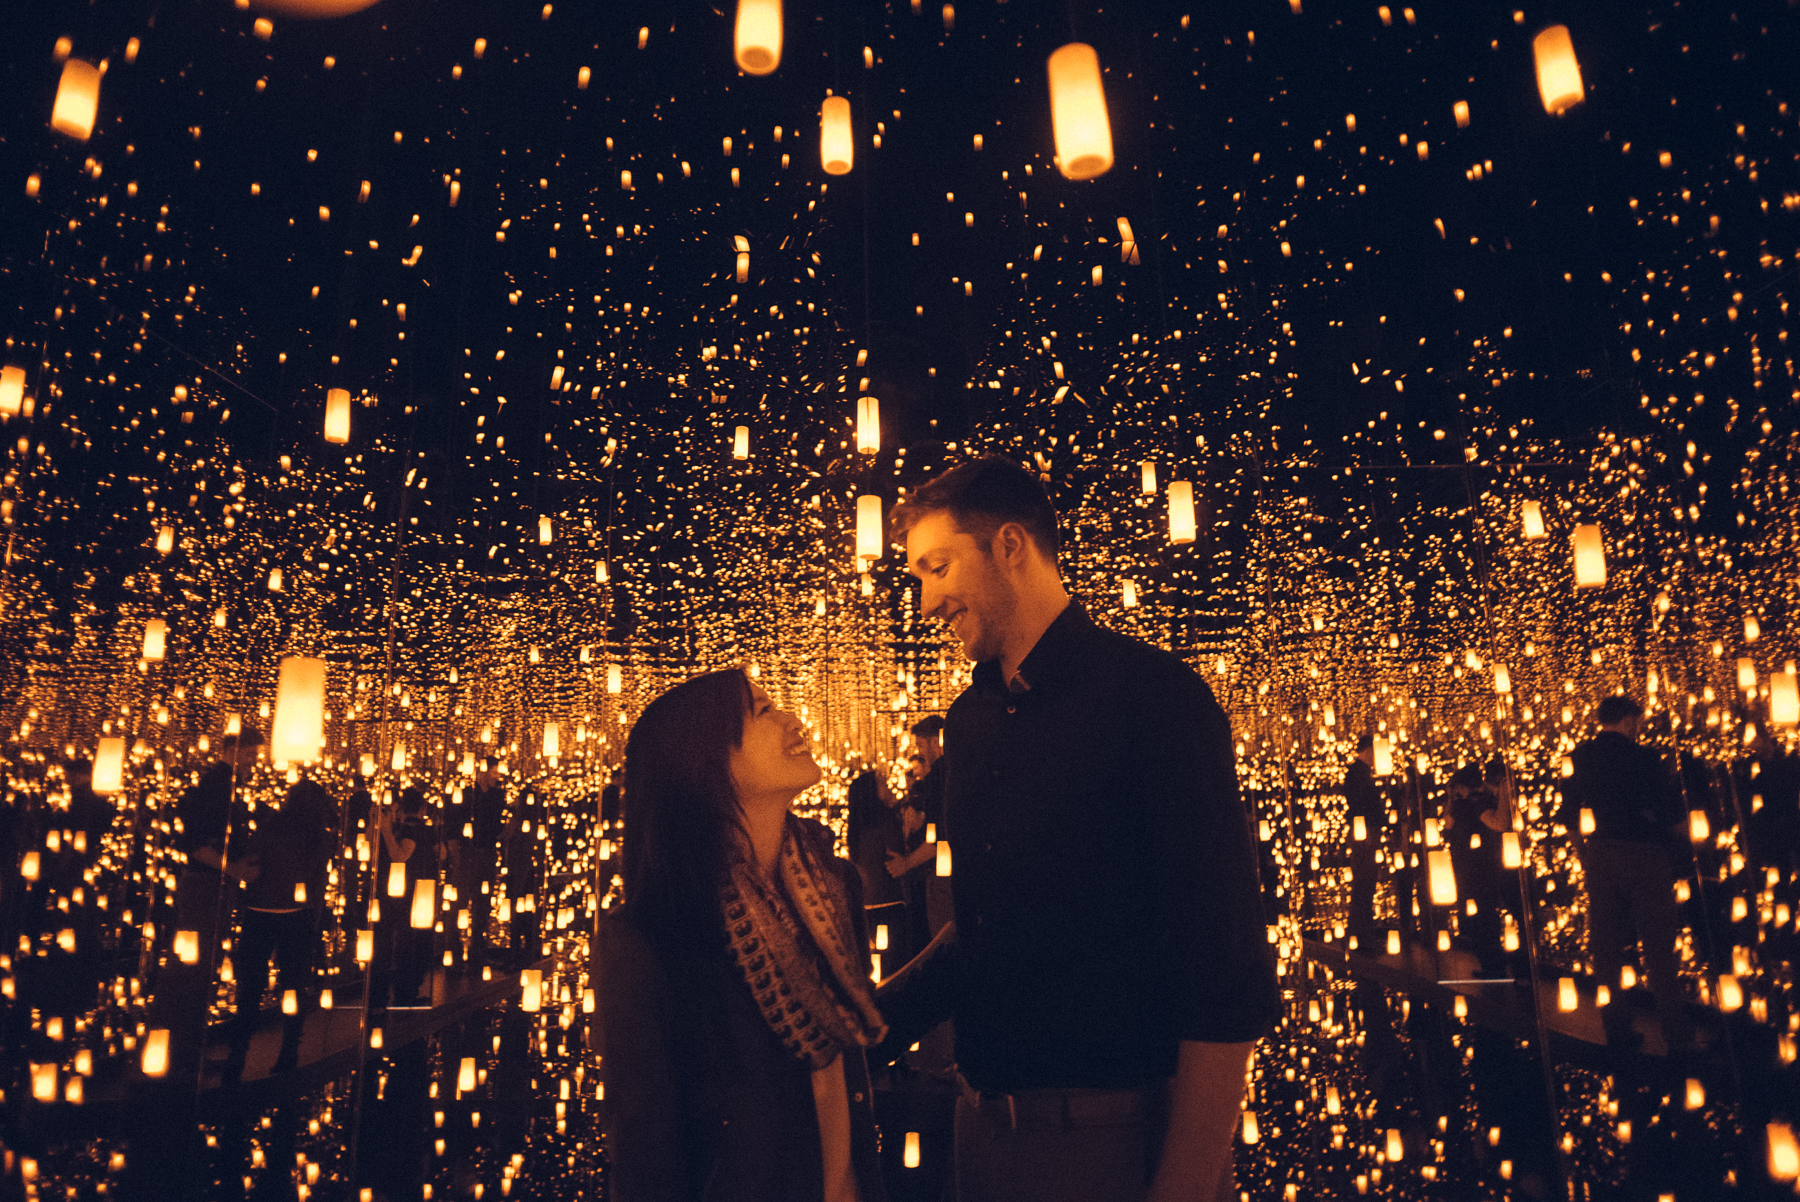 AJ Jan Yayoi Kusama Infinity Mirrors Proposal Engagement Photoshoot